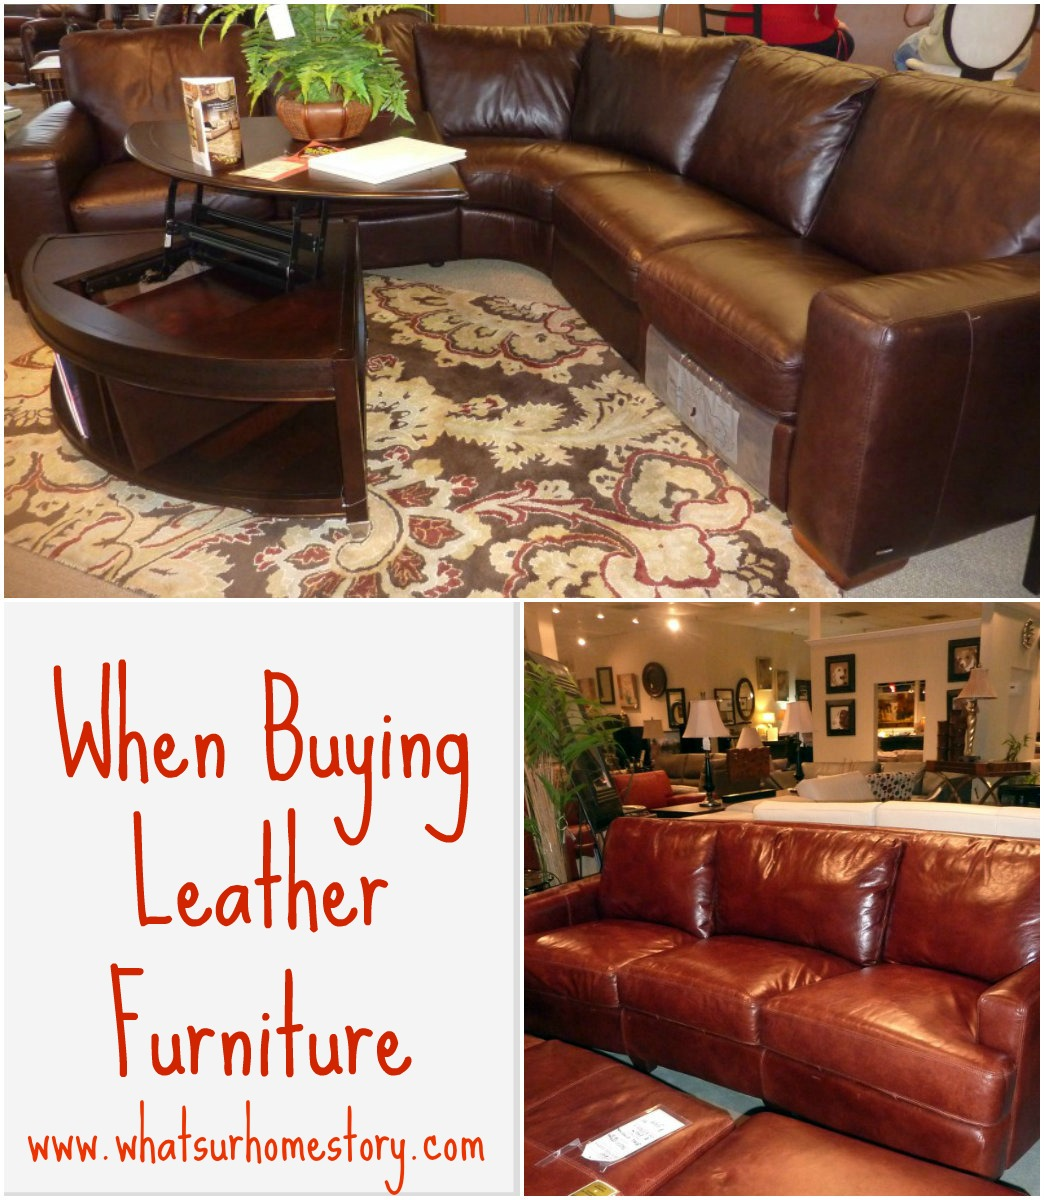 what to look for when buying leather furniture,tipsonbuyingleatherfurniture,typesofleather